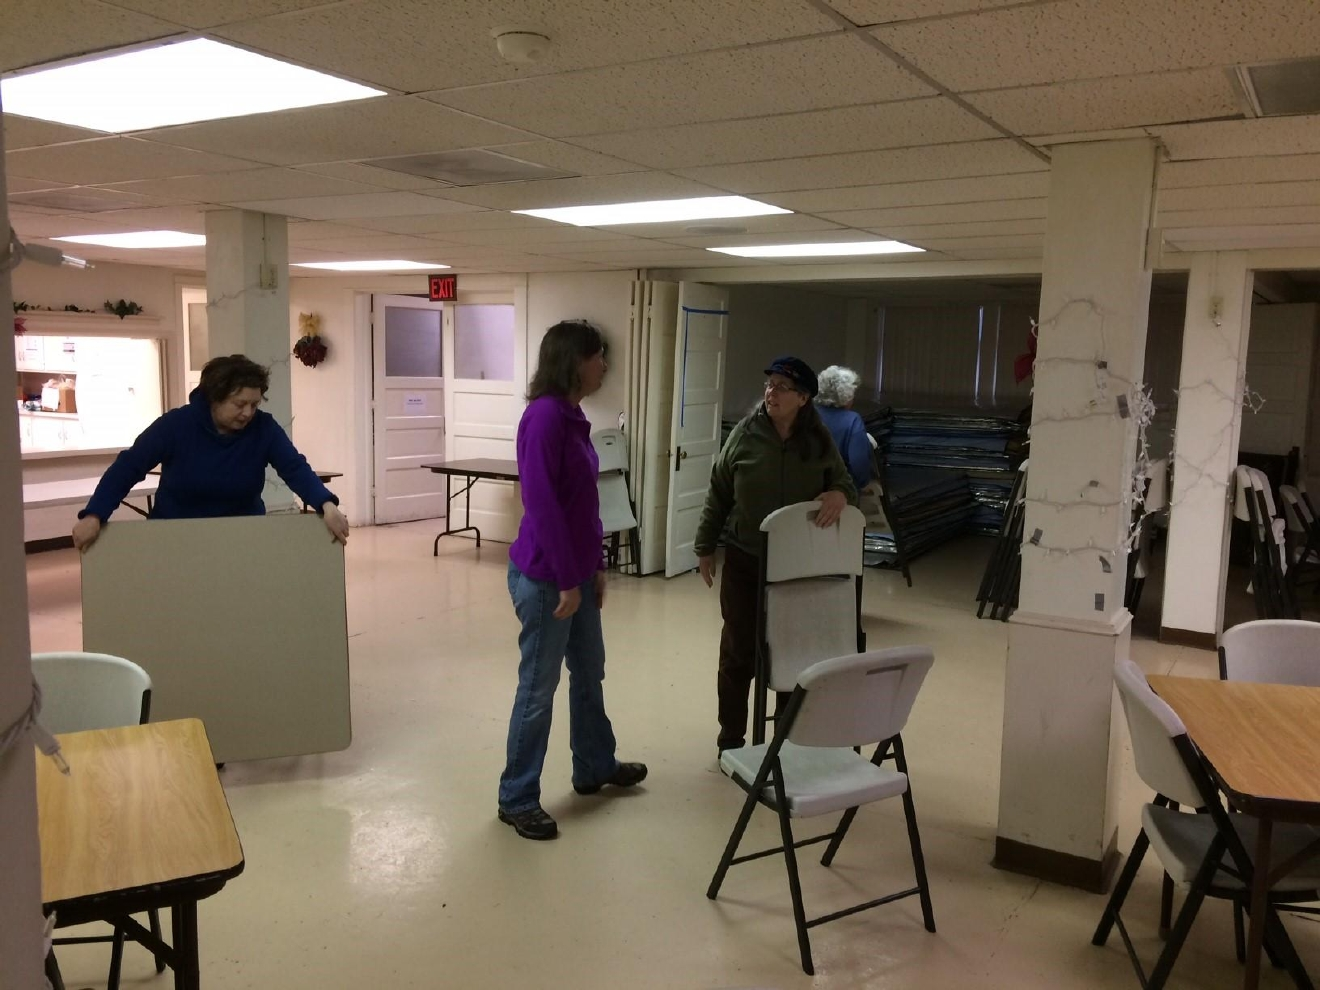 The Egan Warming Centers are preparing for dozens of homeless people to visit their locations this week as the temperatures drop below 30 degress. (SBG photo)